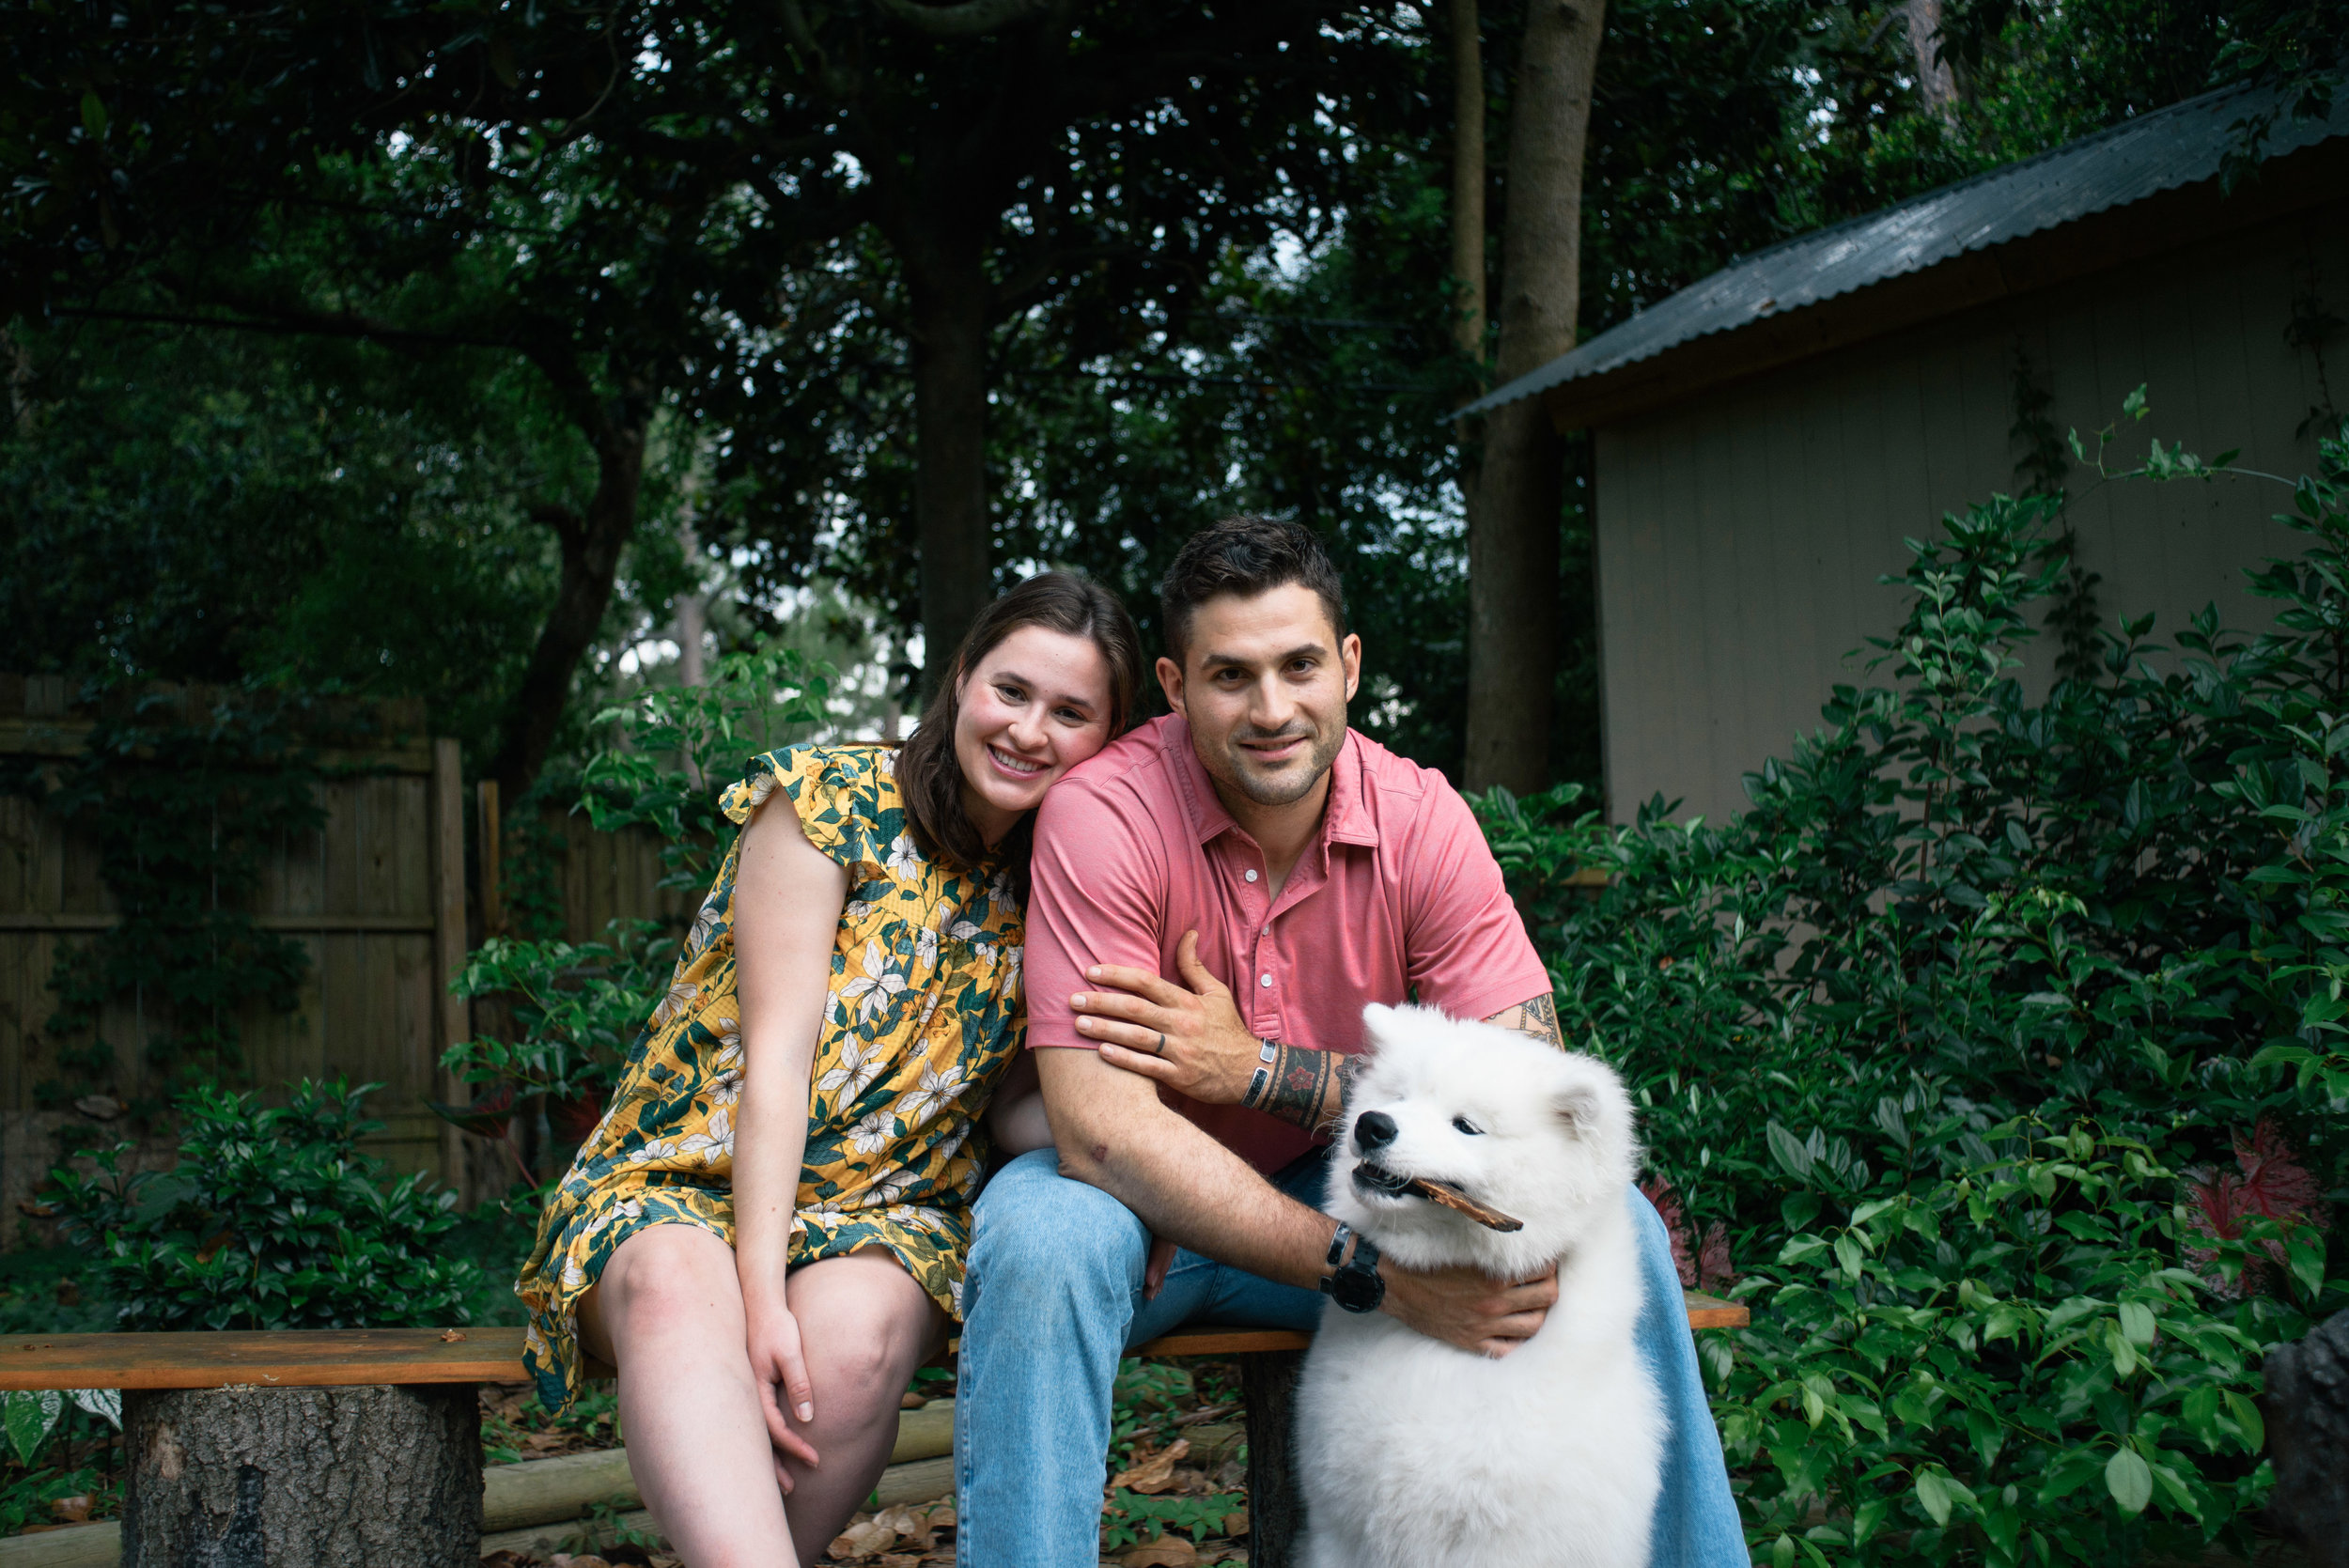 ellie-and-anthony-maternity-photos-june-2018 (45 of 189).jpg